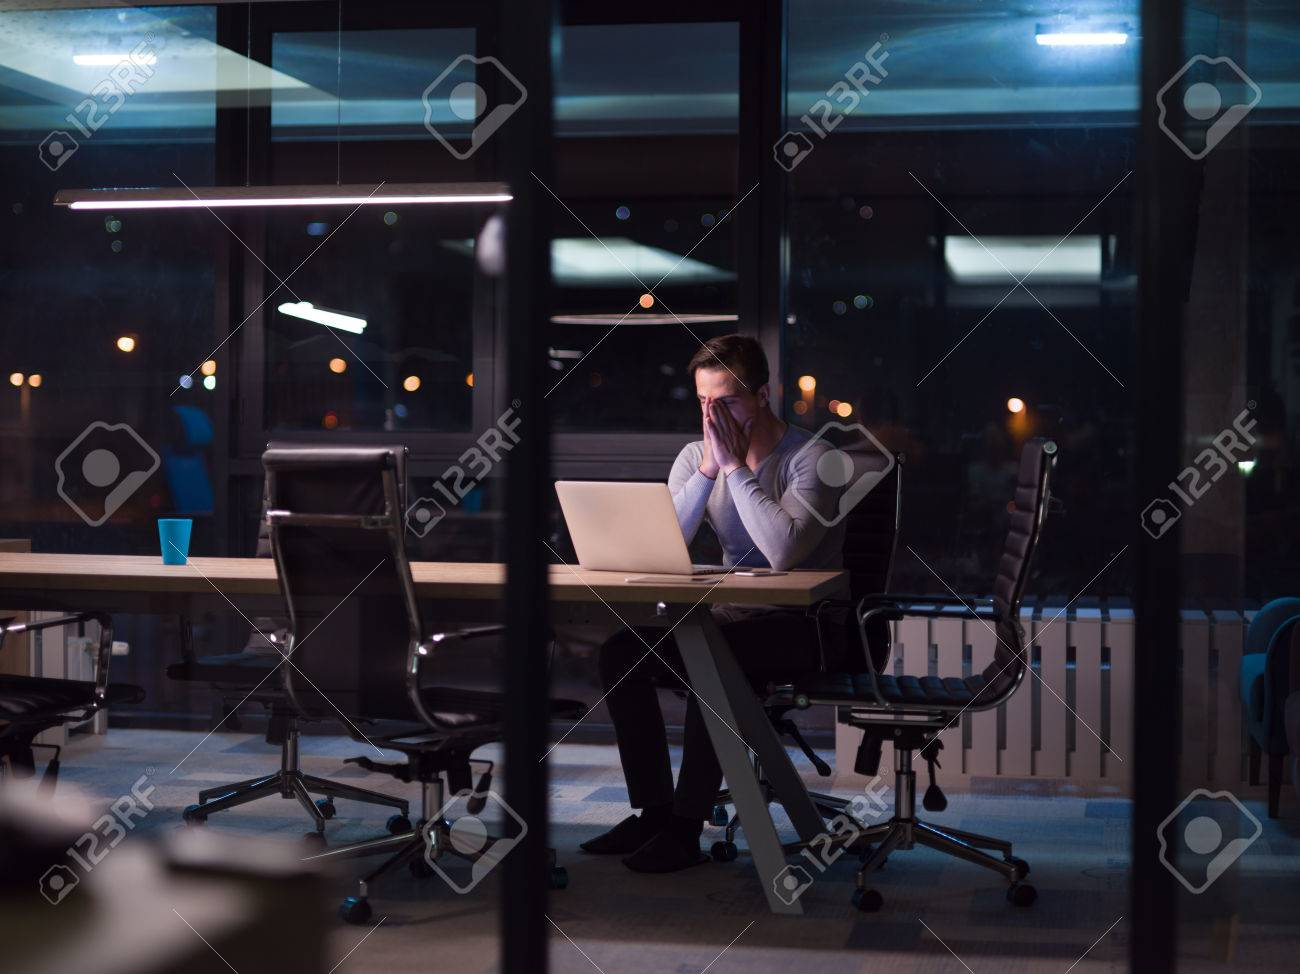 Young man working on laptop at night in dark office. The designer works in the later time. - 80575259